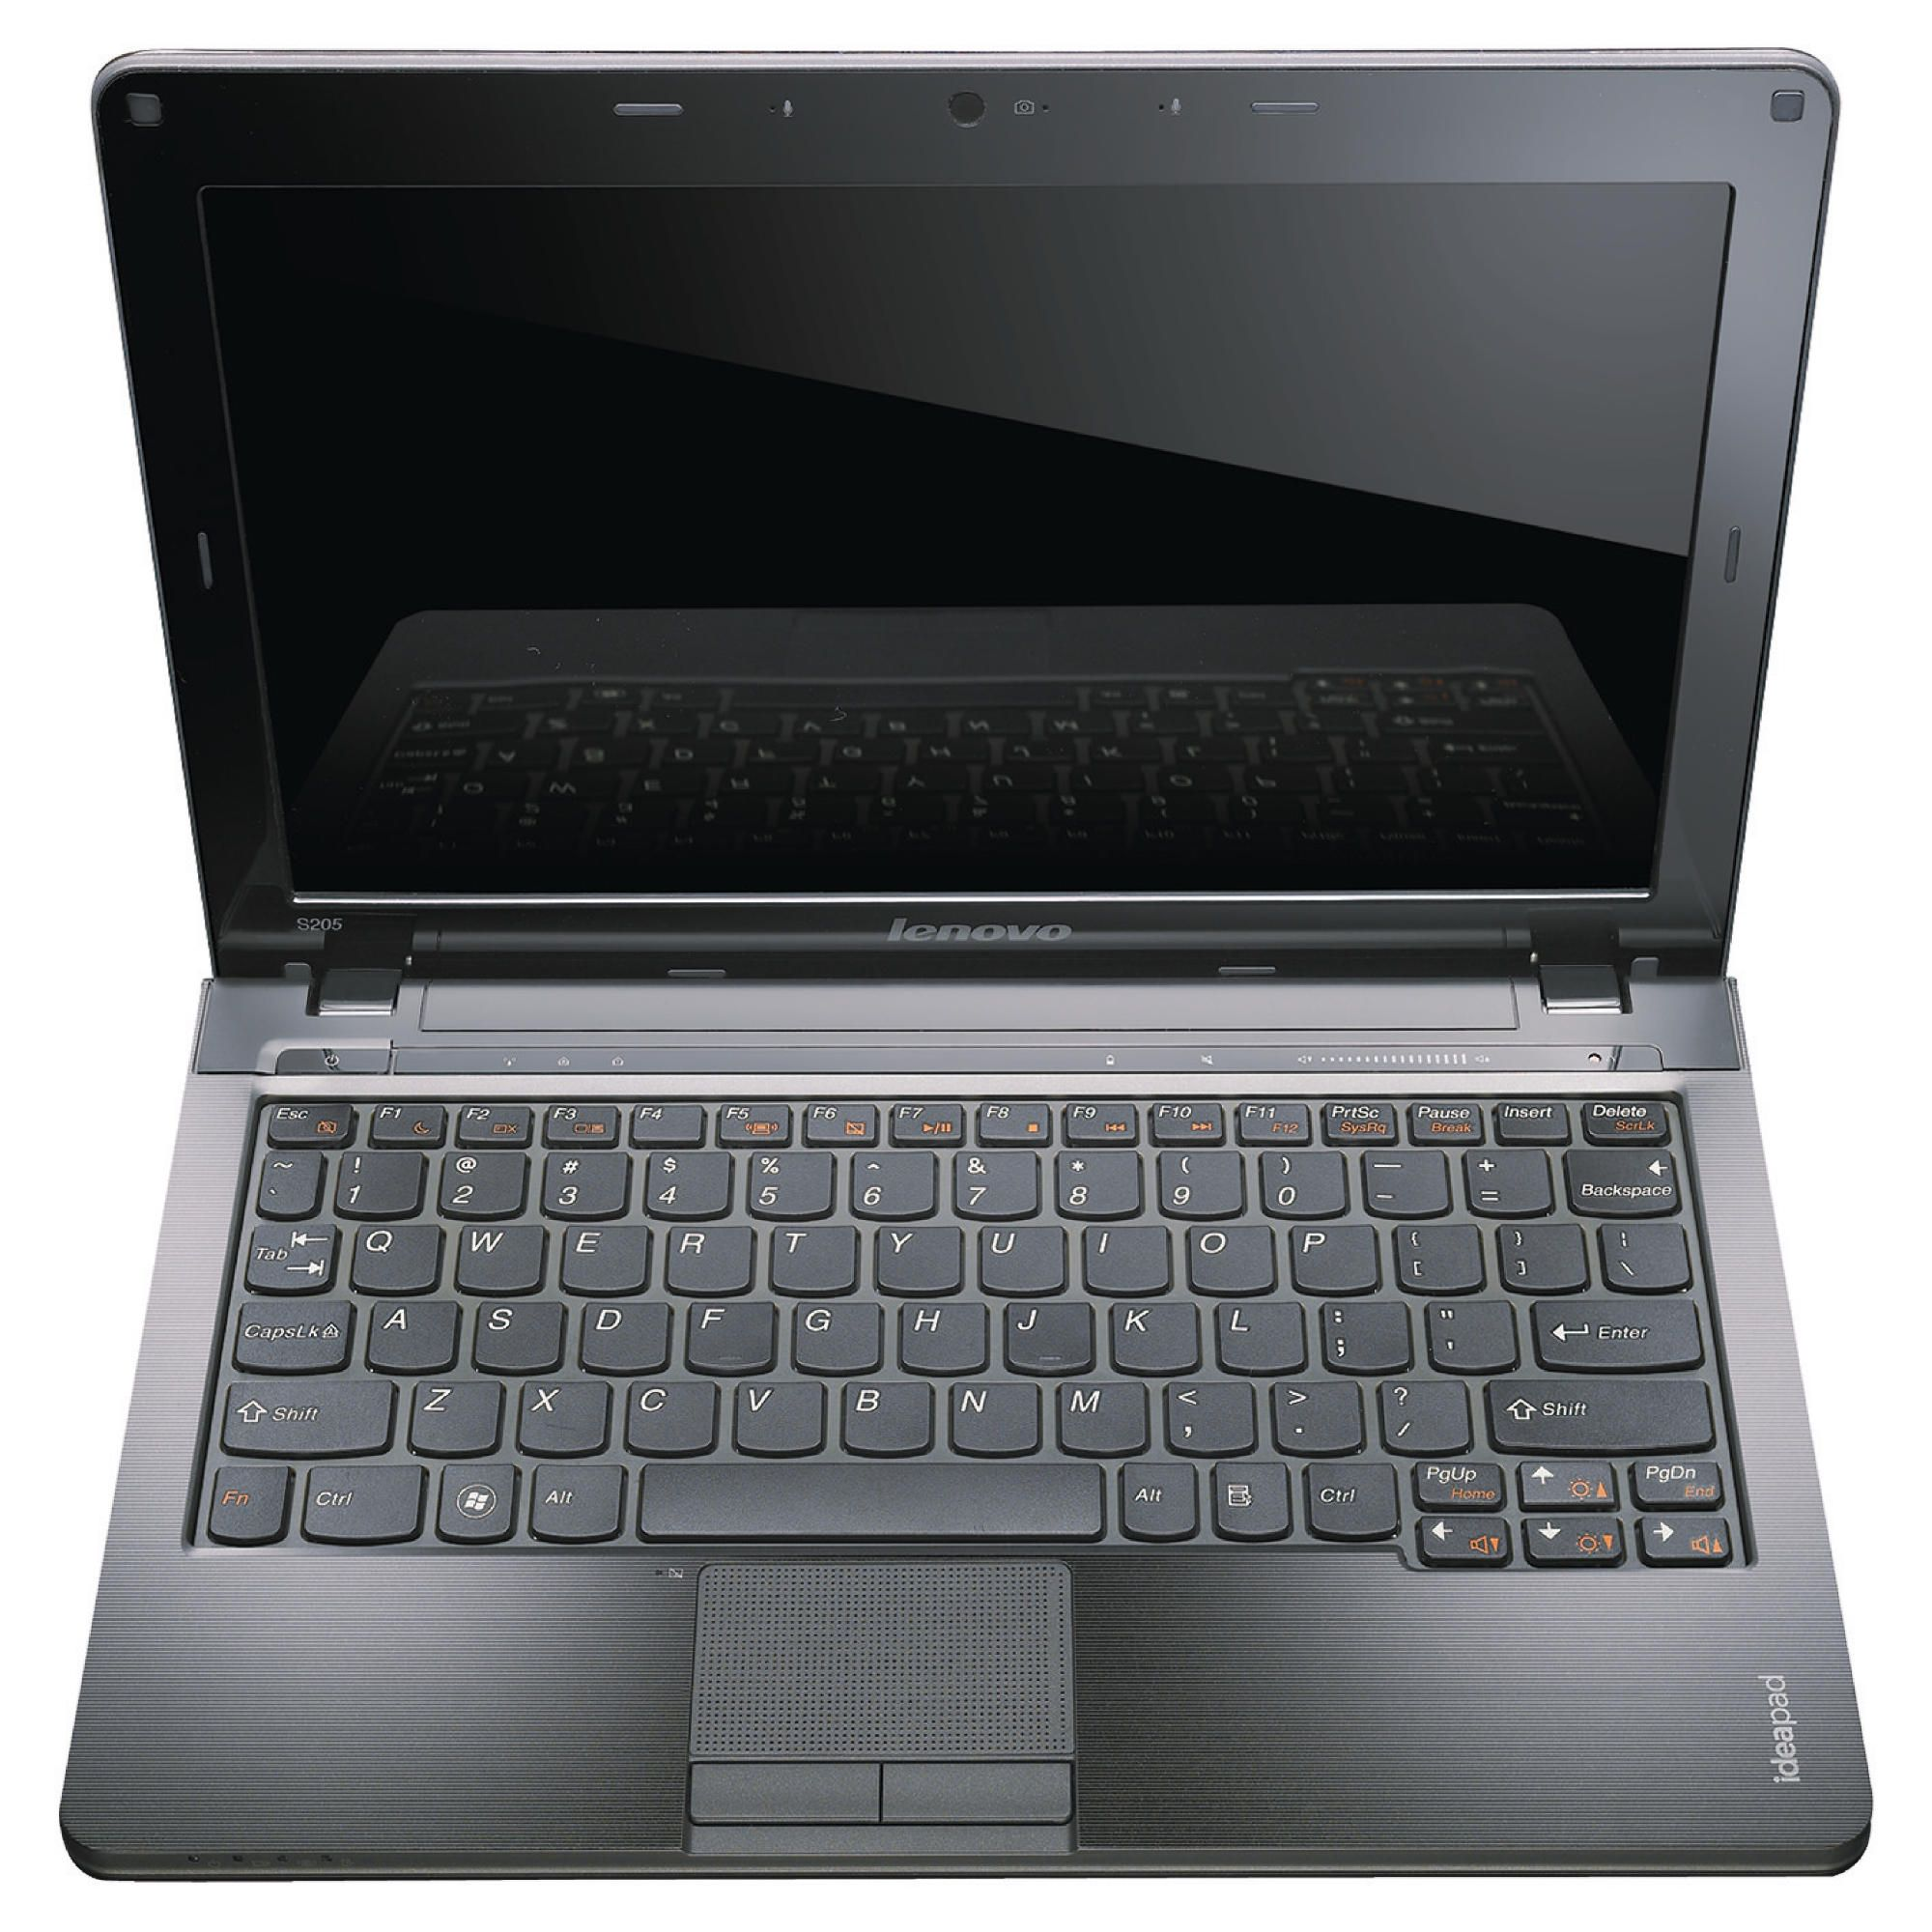 Lenovo S205 Netbook (AMD E350, 4GB, 500GB, 11.6'' Display) Black at Tesco Direct